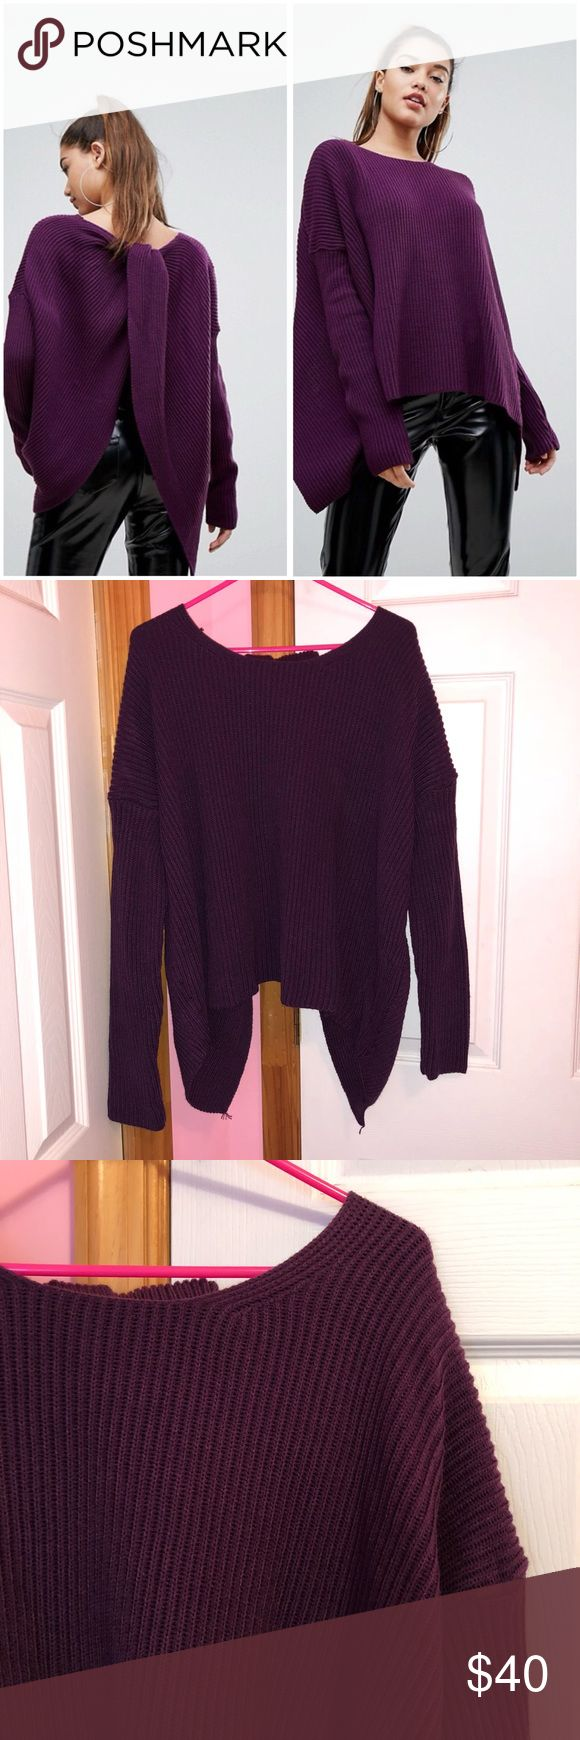 """ASOS Boohoo Purple Twist Back Sweater Boohoo from ASOS. Only tried on and has been hand washed. Was not put in the dryer. Chunky ribbed knit purple sweater. High cut neckline. Twist back. Oversized/relaxed fit. Size is a M/L (so approx sizes are 8-12). The front is approx 22"""" laying flat. Bust laying flat is approx 56"""". 100% acrylic. Stock photos from ASOS website. ❌NO TRADES❌ ASOS Sweaters"""